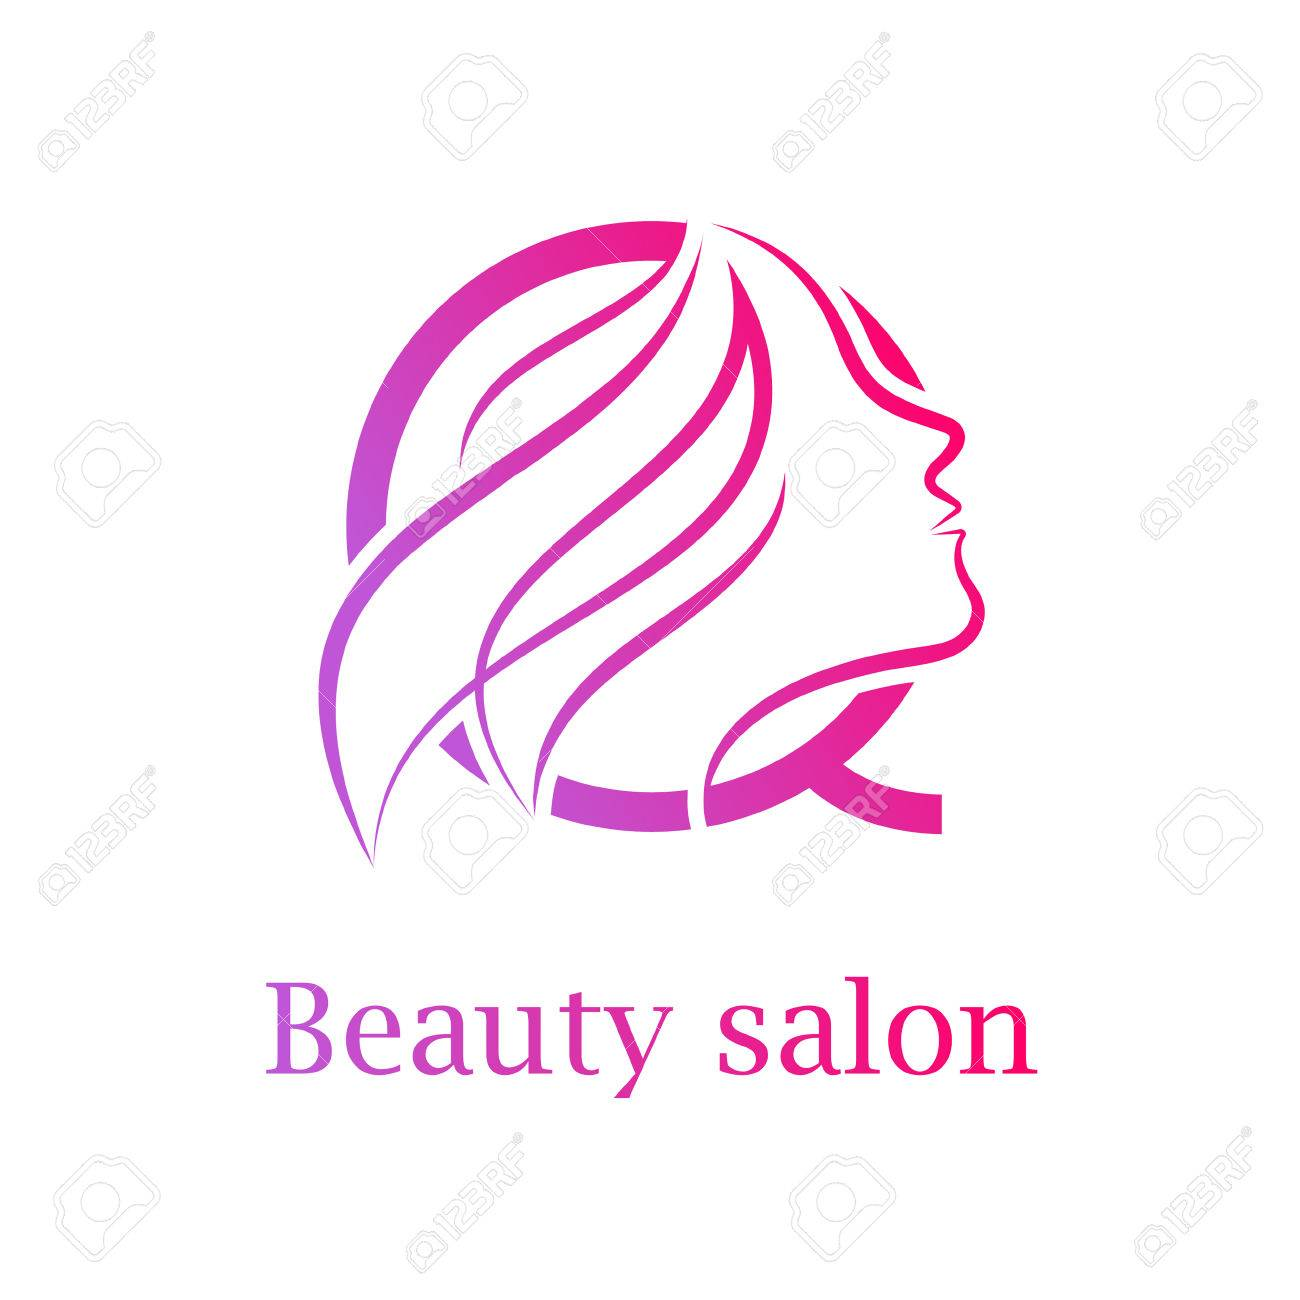 abstract letter q logobeauty salon logo design template royalty